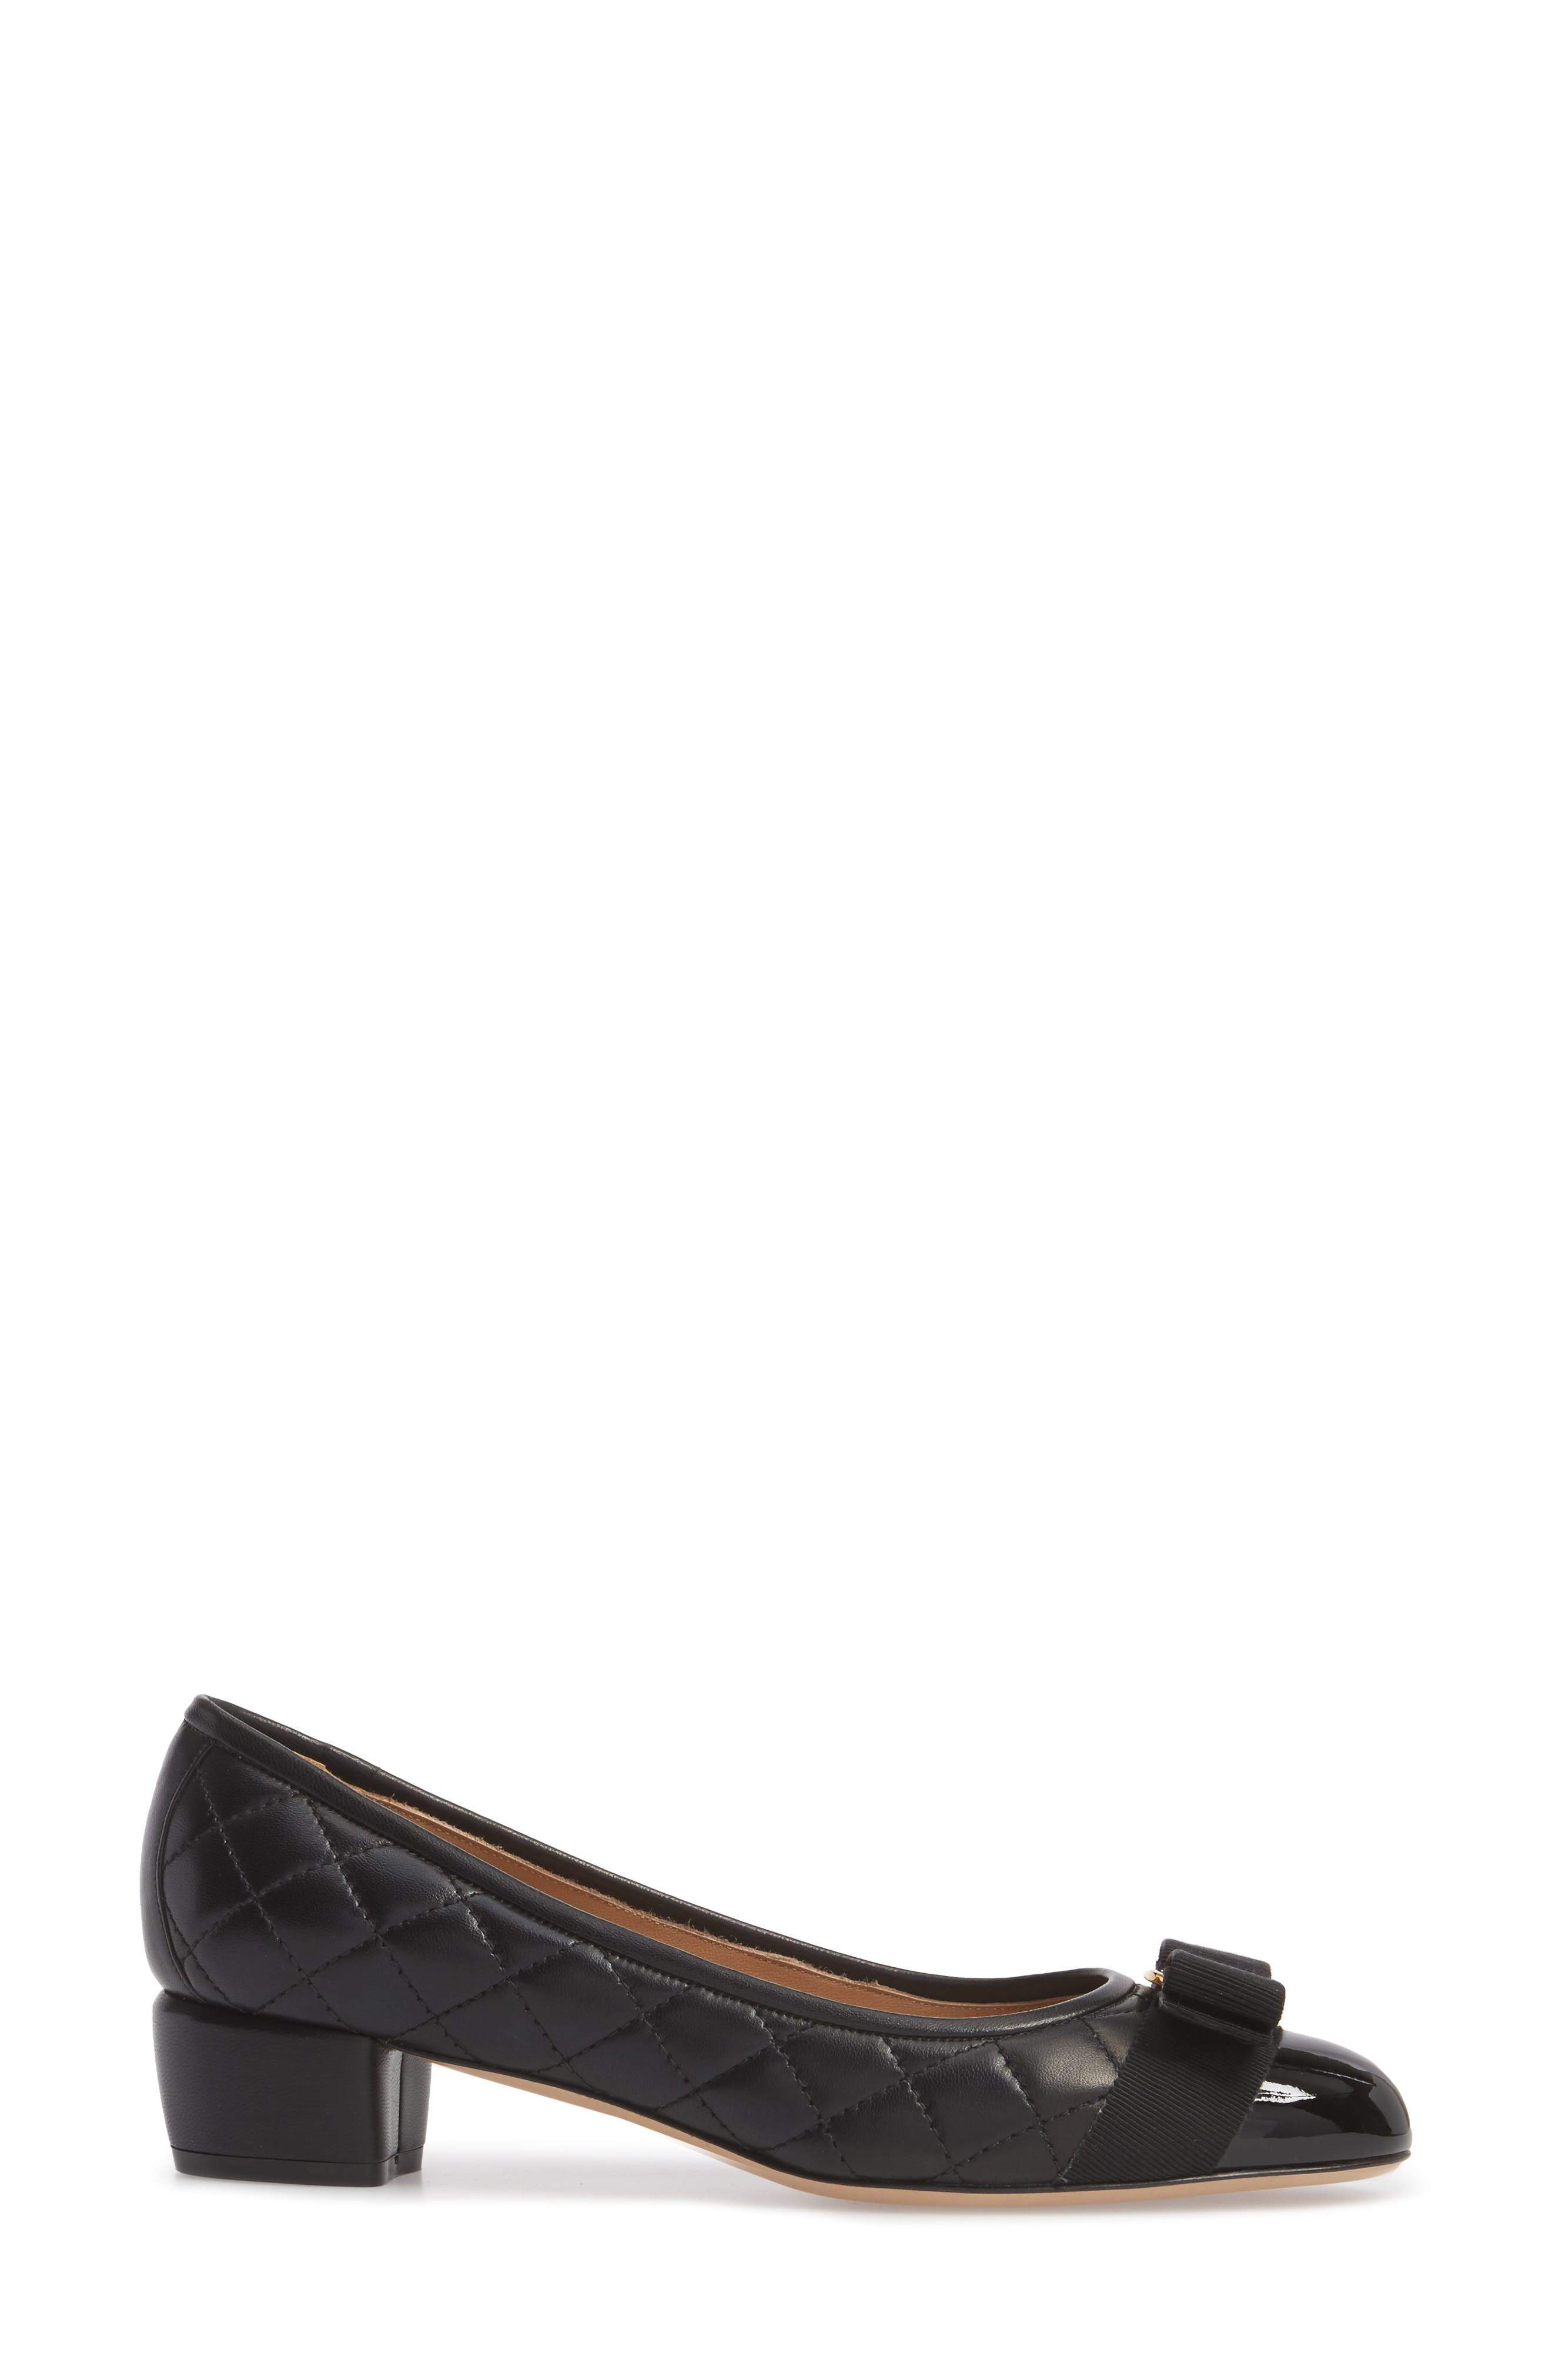 Alternate Image 3  - Salvatore Ferragamo Vara Pump (Women)